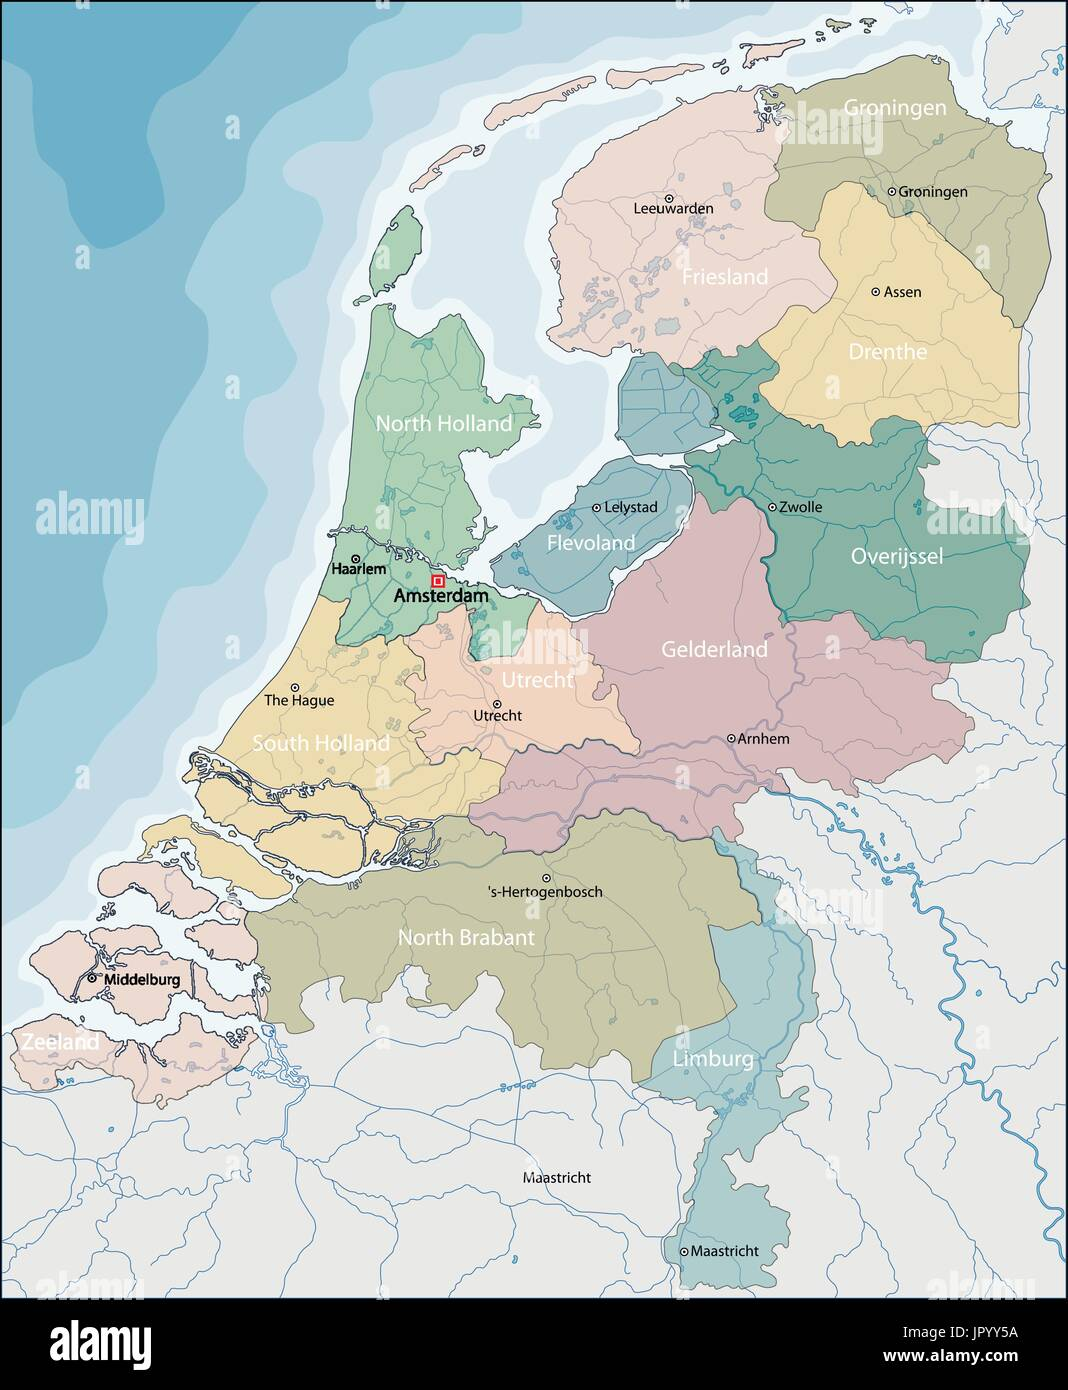 Rotterdam Map Holland Boundary Stock Photos & Rotterdam Map Holland ...